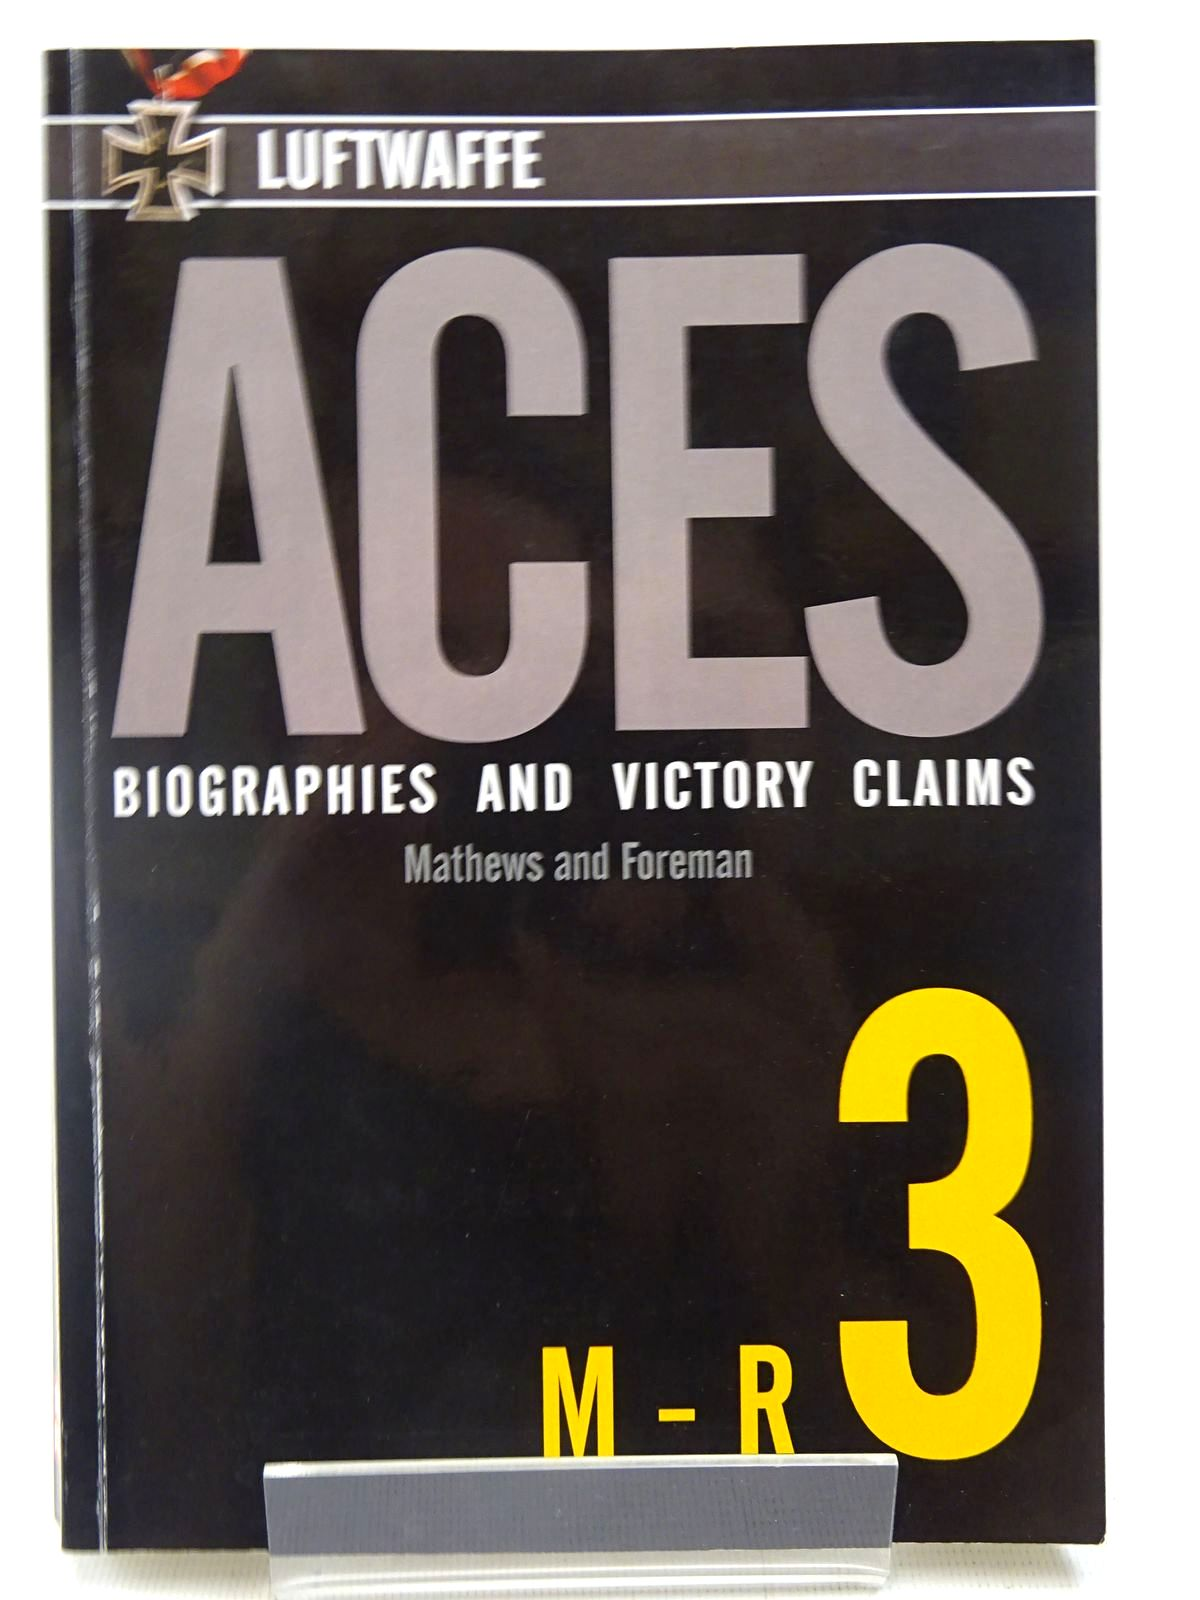 Photo of LUFTWAFFE ACES BIOGRAPHIES AND VICTORY CLAIMS VOLUME 3 M - R written by Matthews, Andrew Johannes<br />Foreman, John published by Red Kite (STOCK CODE: 2127965)  for sale by Stella & Rose's Books